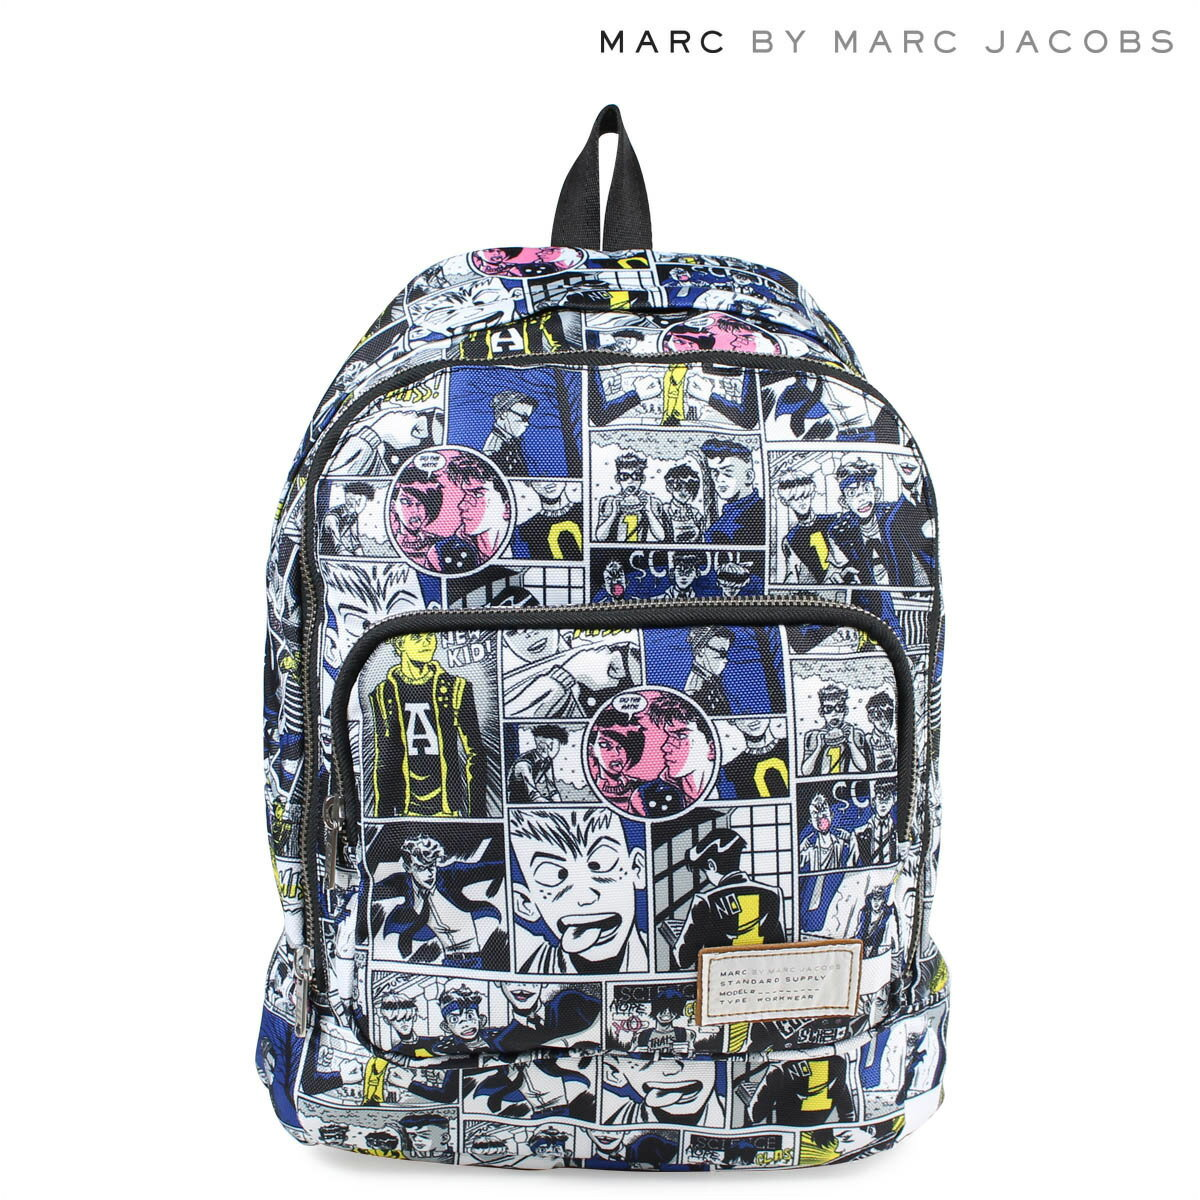 MARC BY MARC JACOBS CARTOON BACKPACK マークバイマークジェイコブス バッグ リュック レディース バックパック M0006405 ホワイト [1712]